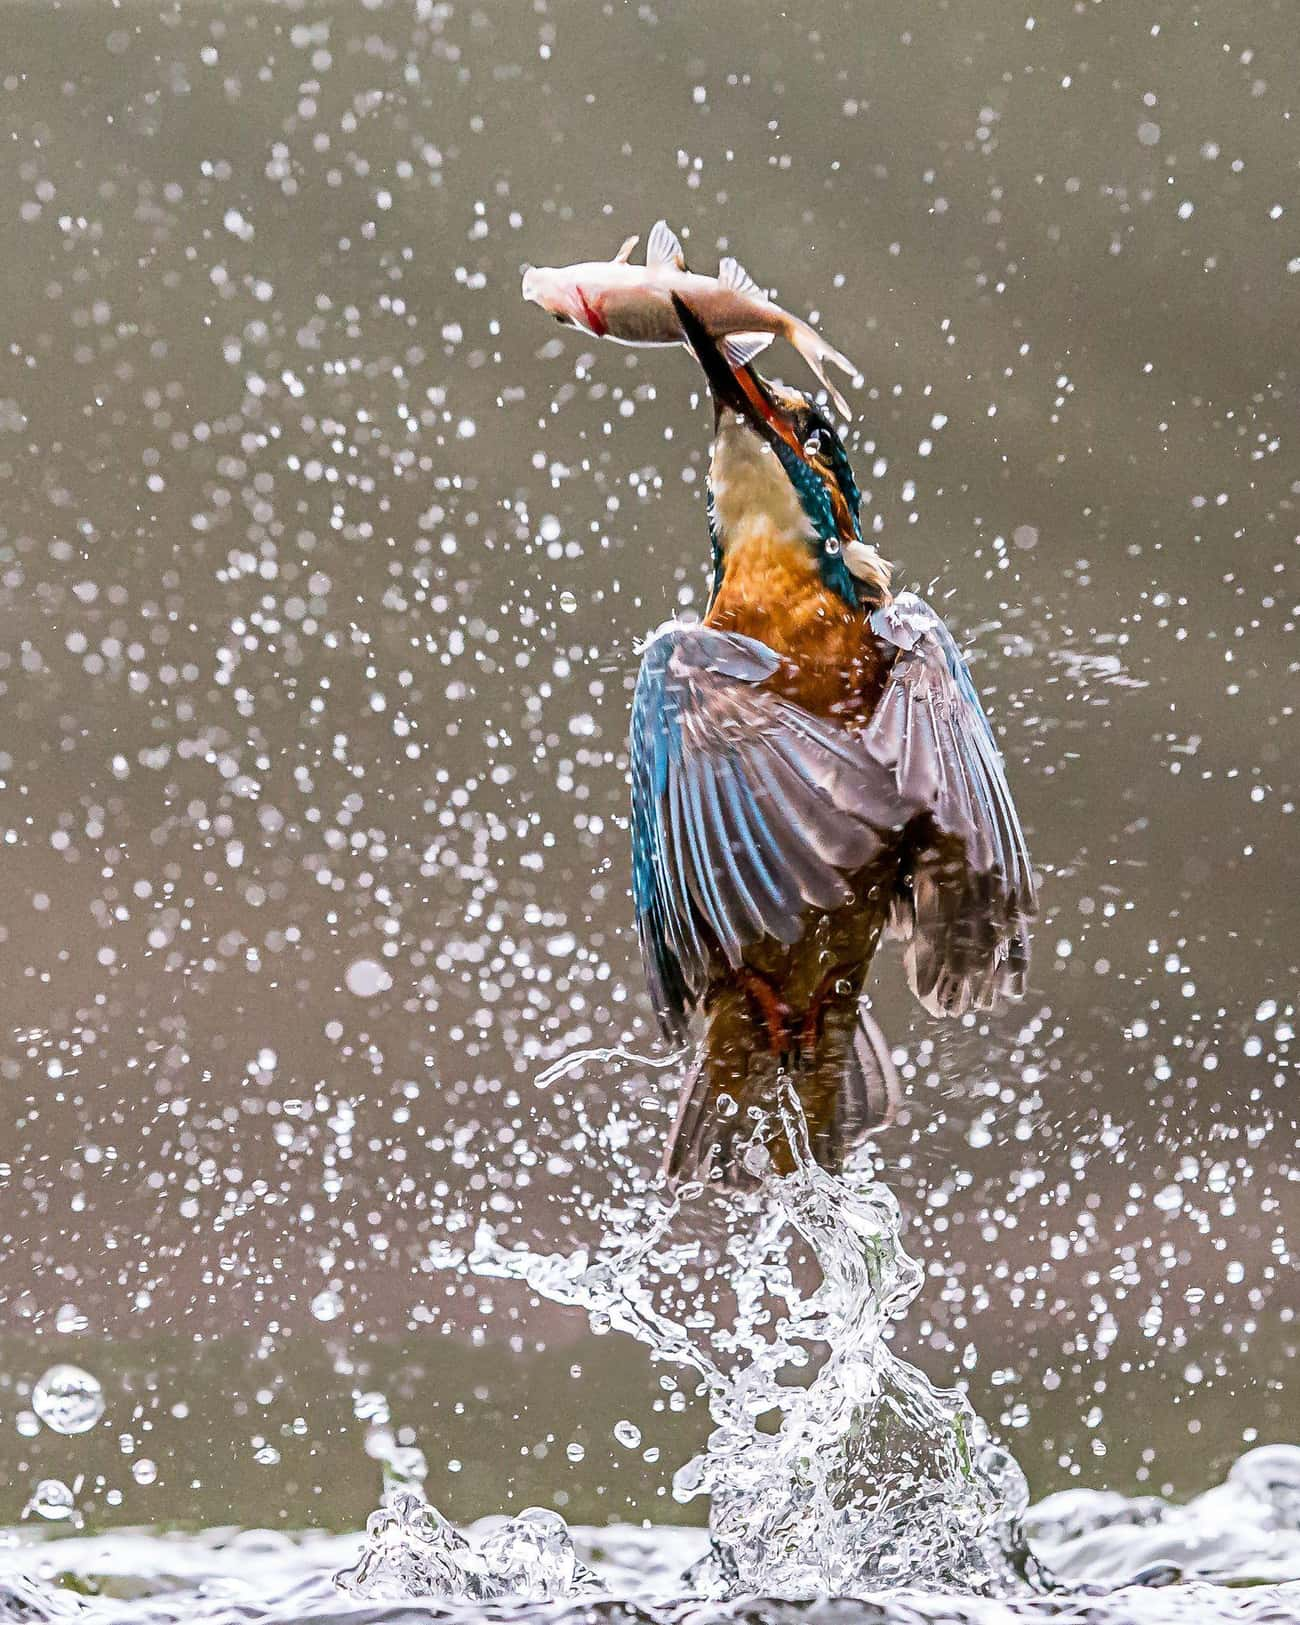 A Bird After Snatching A Fish is listed (or ranked) 3 on the list 32 High-Speed Photos That Freeze Time And Show You The World In A New Way